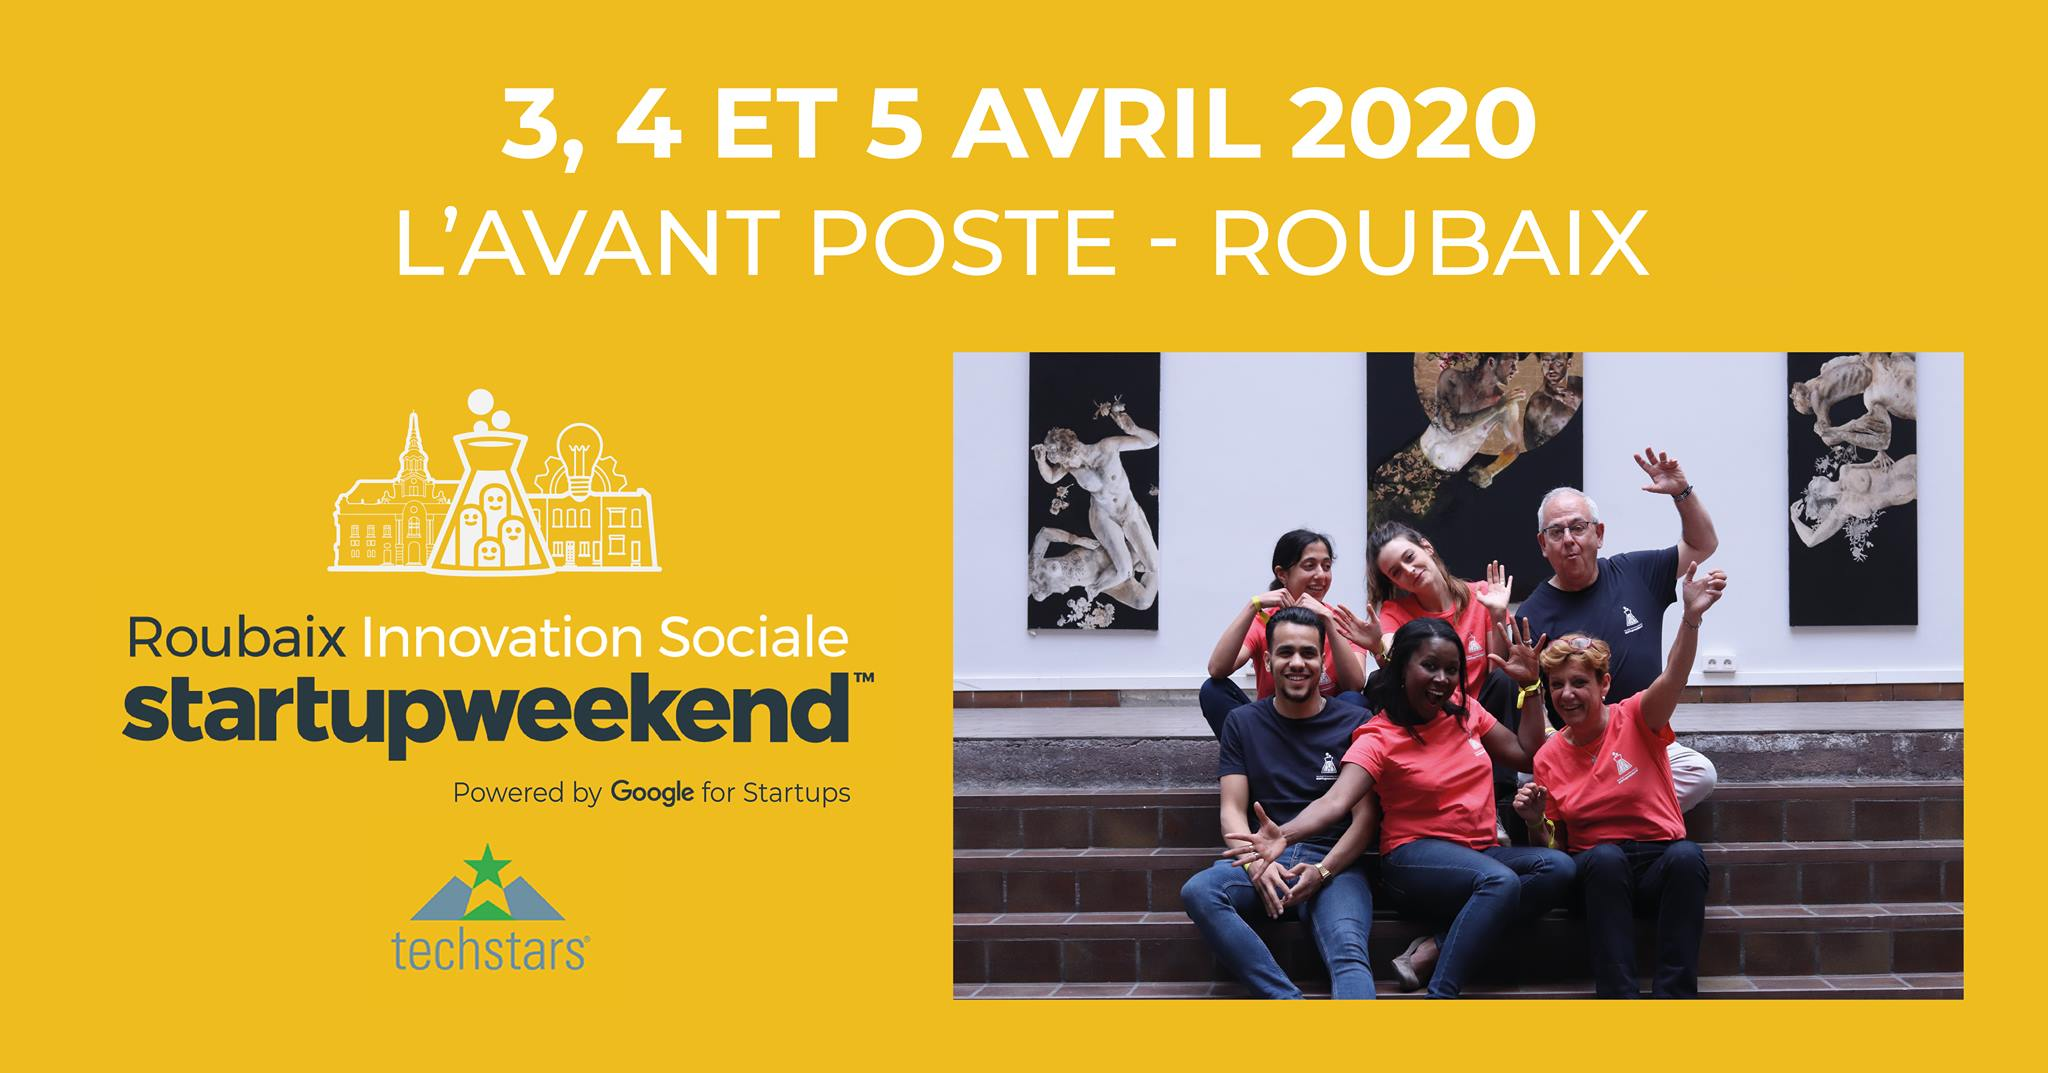 Startup_weekend_innovation_sociale